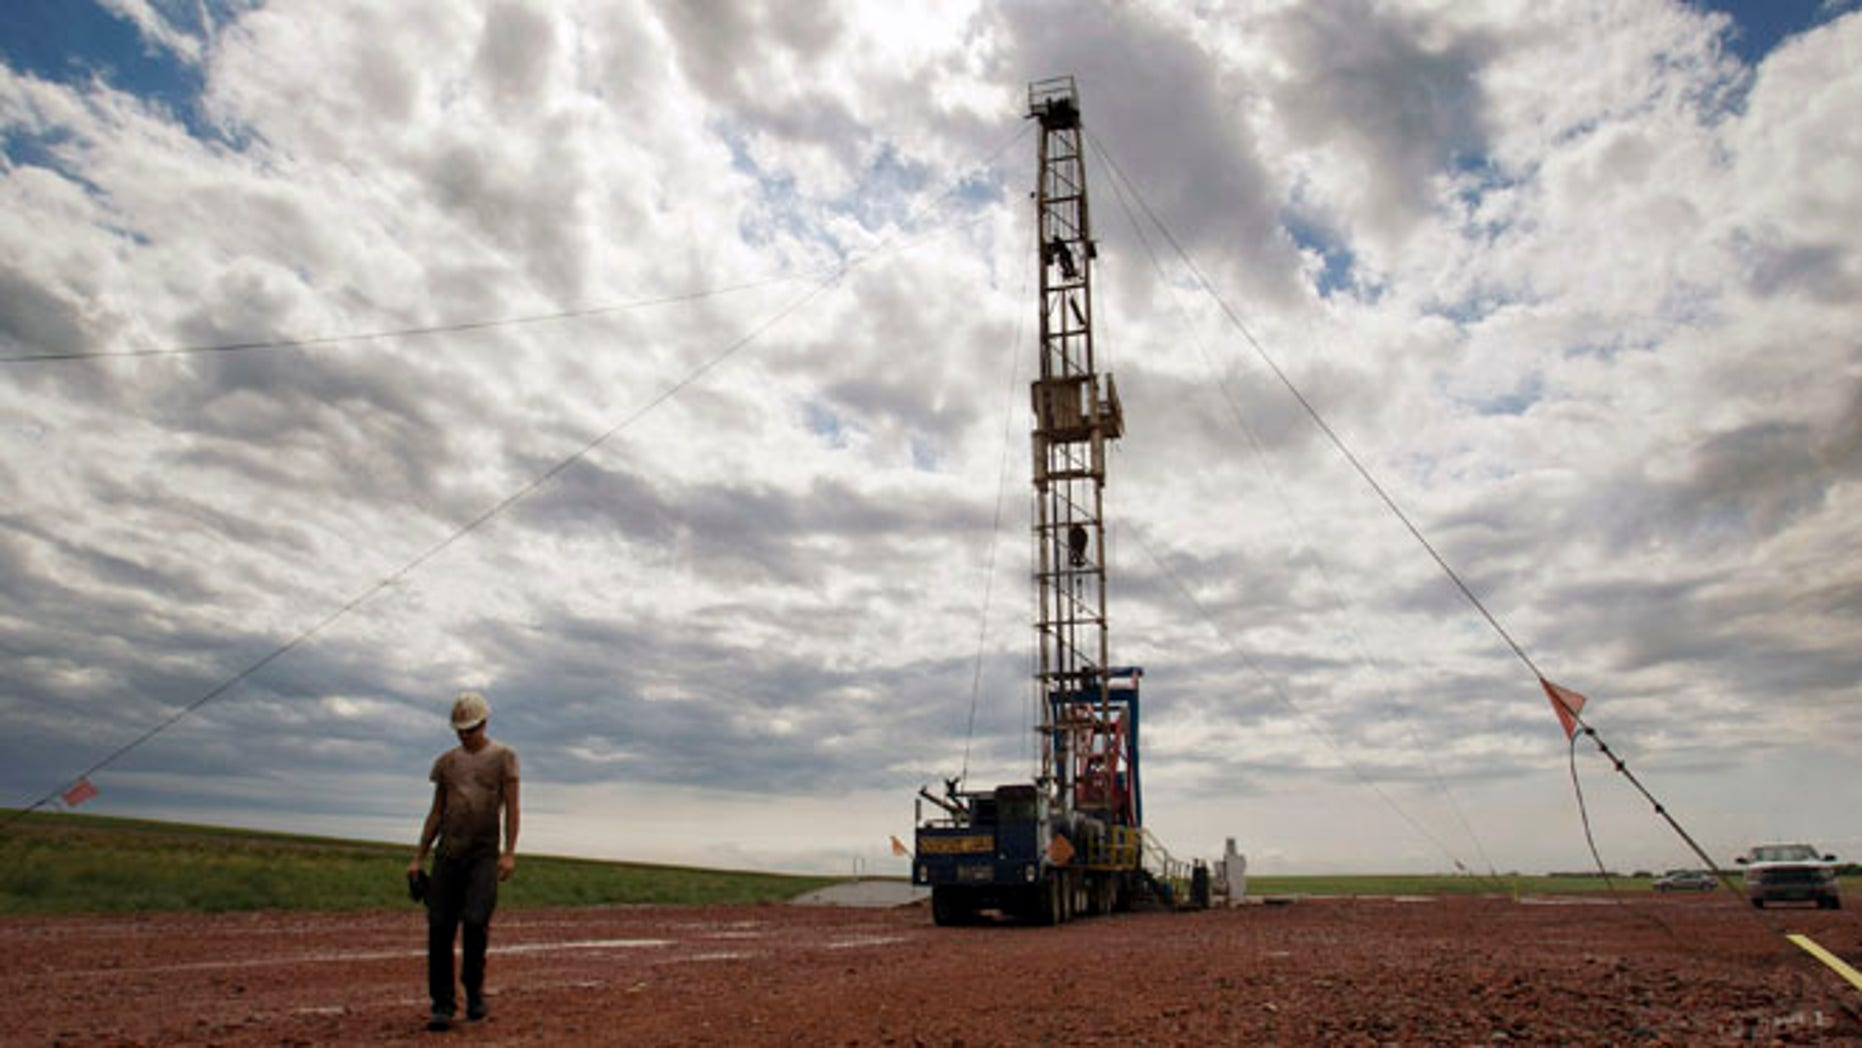 July 26, 2011: A worker walks by an oil derrick outside of Williston, N.D. Relief could be on the horizon for strapped public services in the Northern Plains' booming oil patch, as elected leaders in Montana and North Dakota move to steer more money into the region during the states' upcoming legislative sessions.